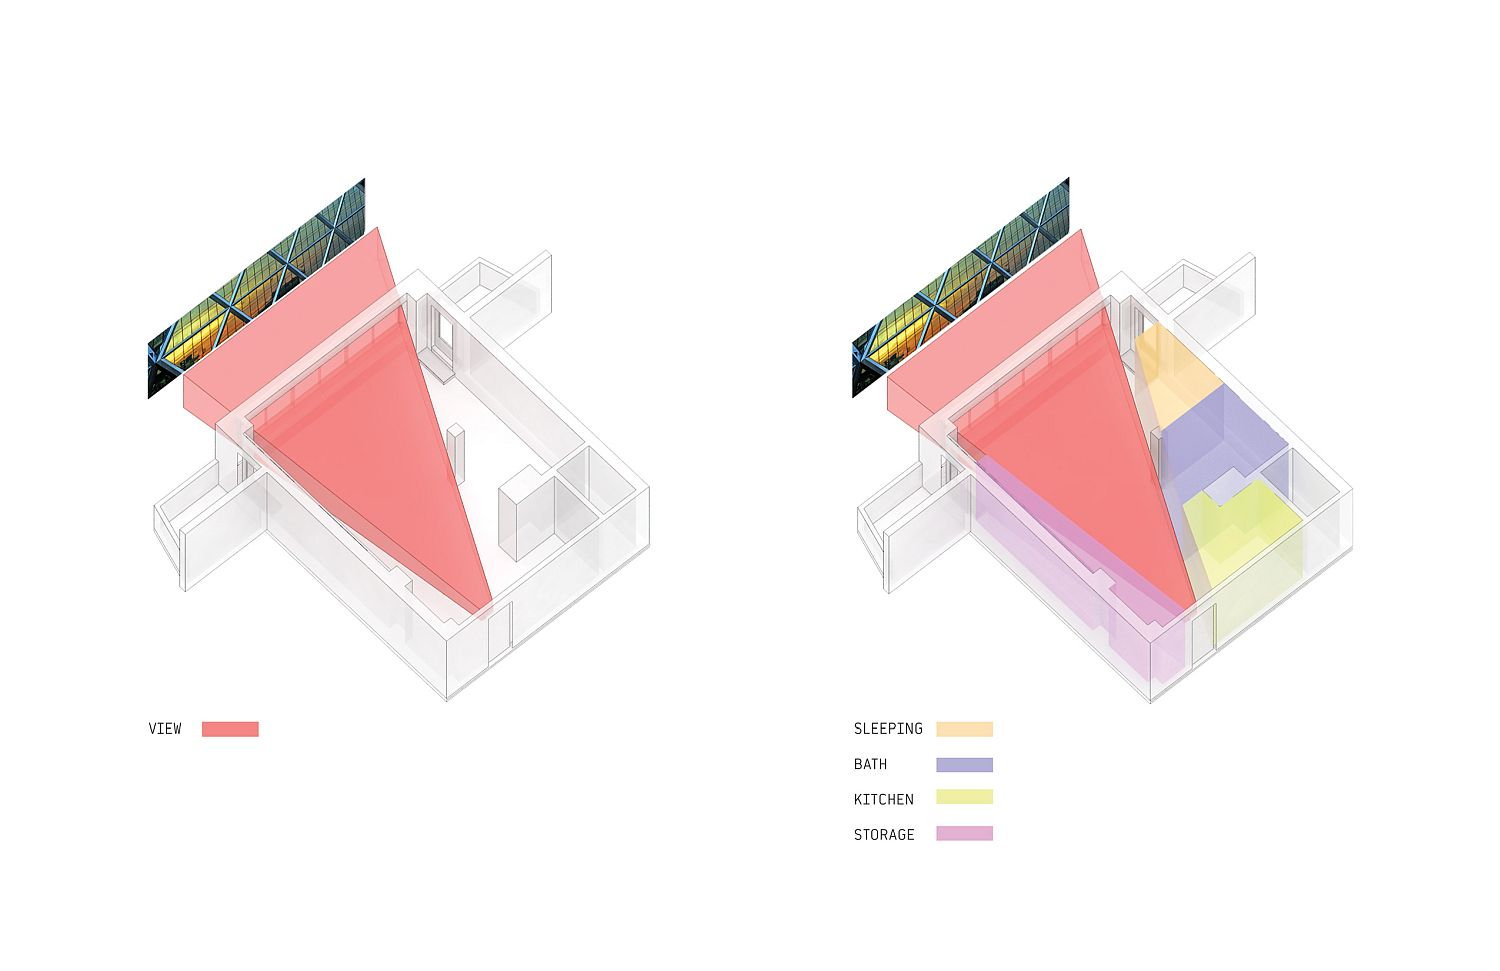 Wedge-shaped design of the storage unit in the apartment plan